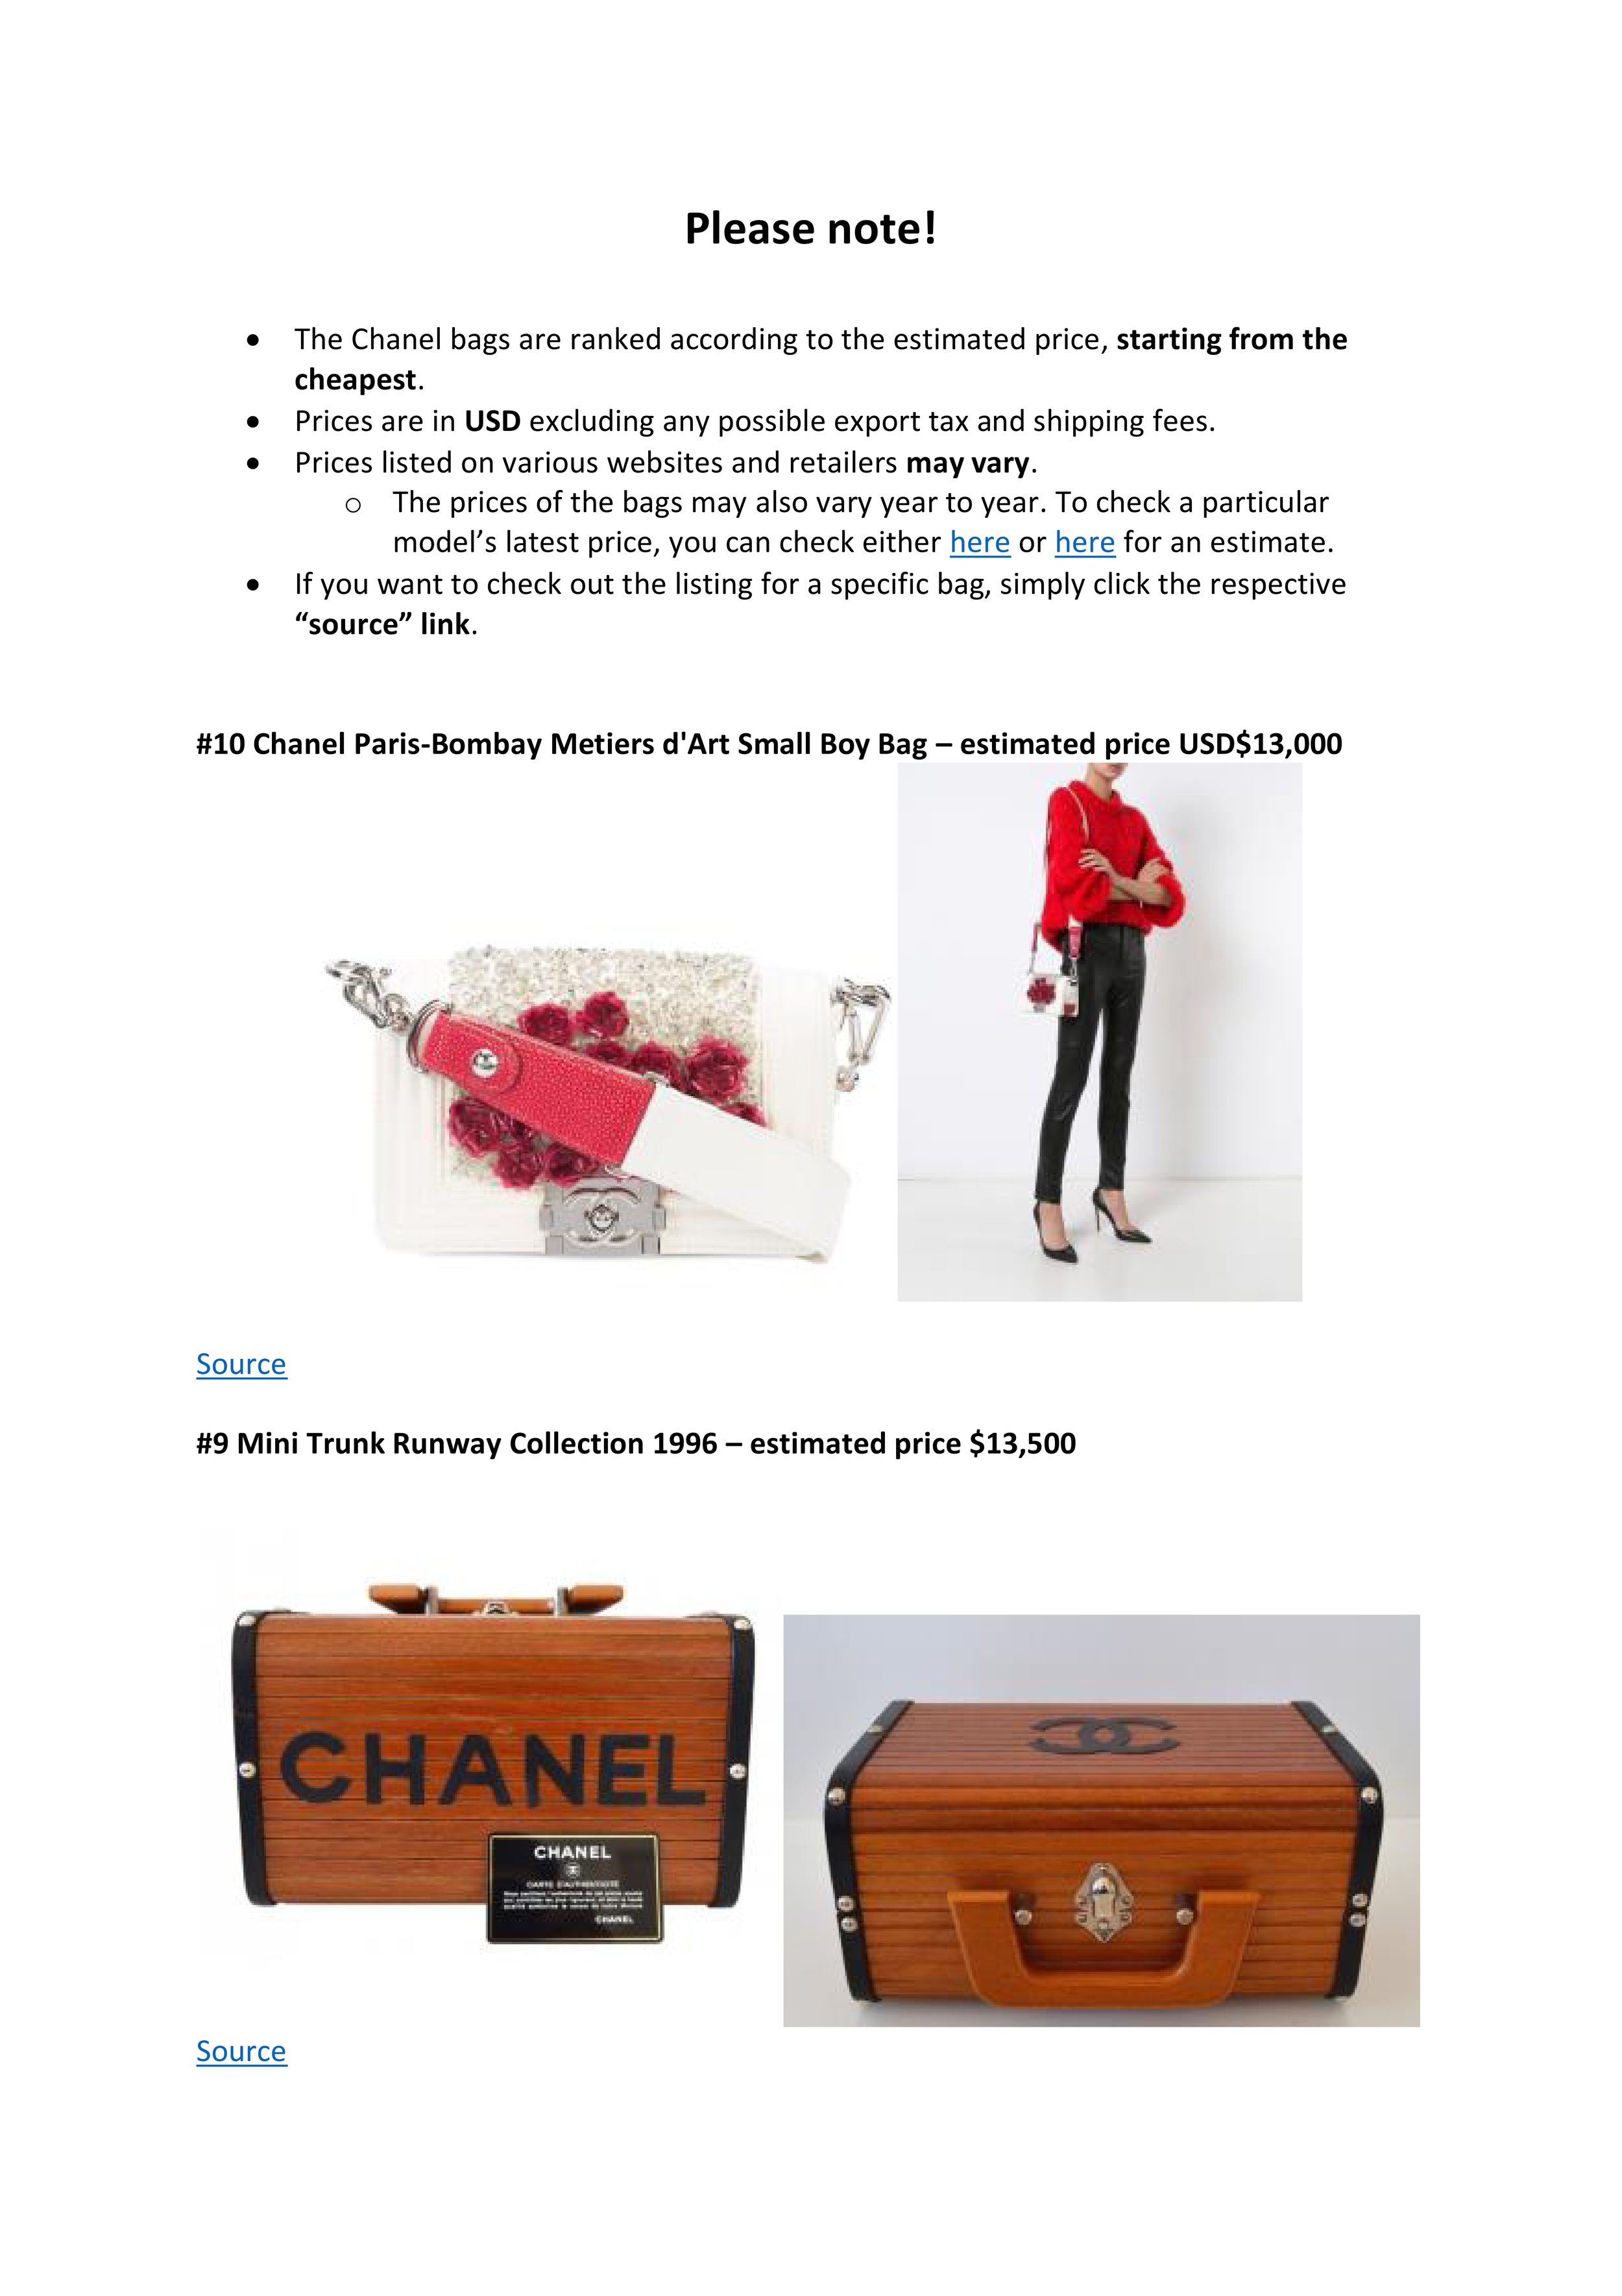 Top 10 Most Expensive Chanel Bags3.jpg